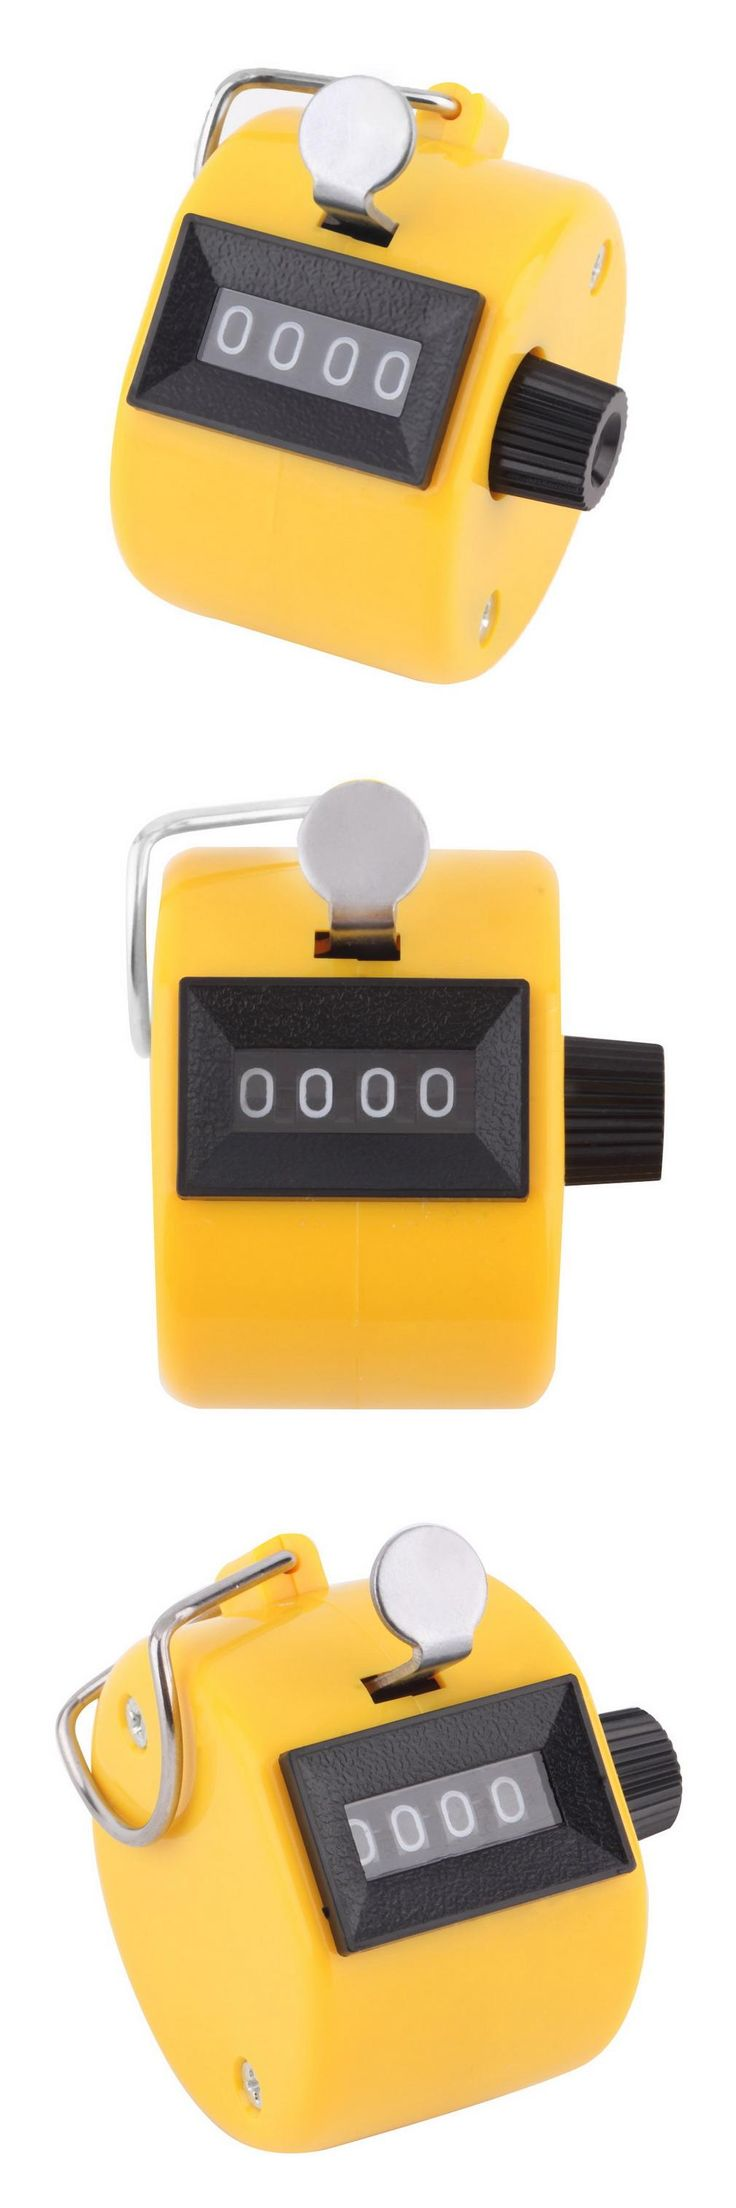 [Visit to Buy] New Arrival Digital Chrome Hand Tally Clicker/Counter 4 Digit Number Clicker Golf #Advertisement